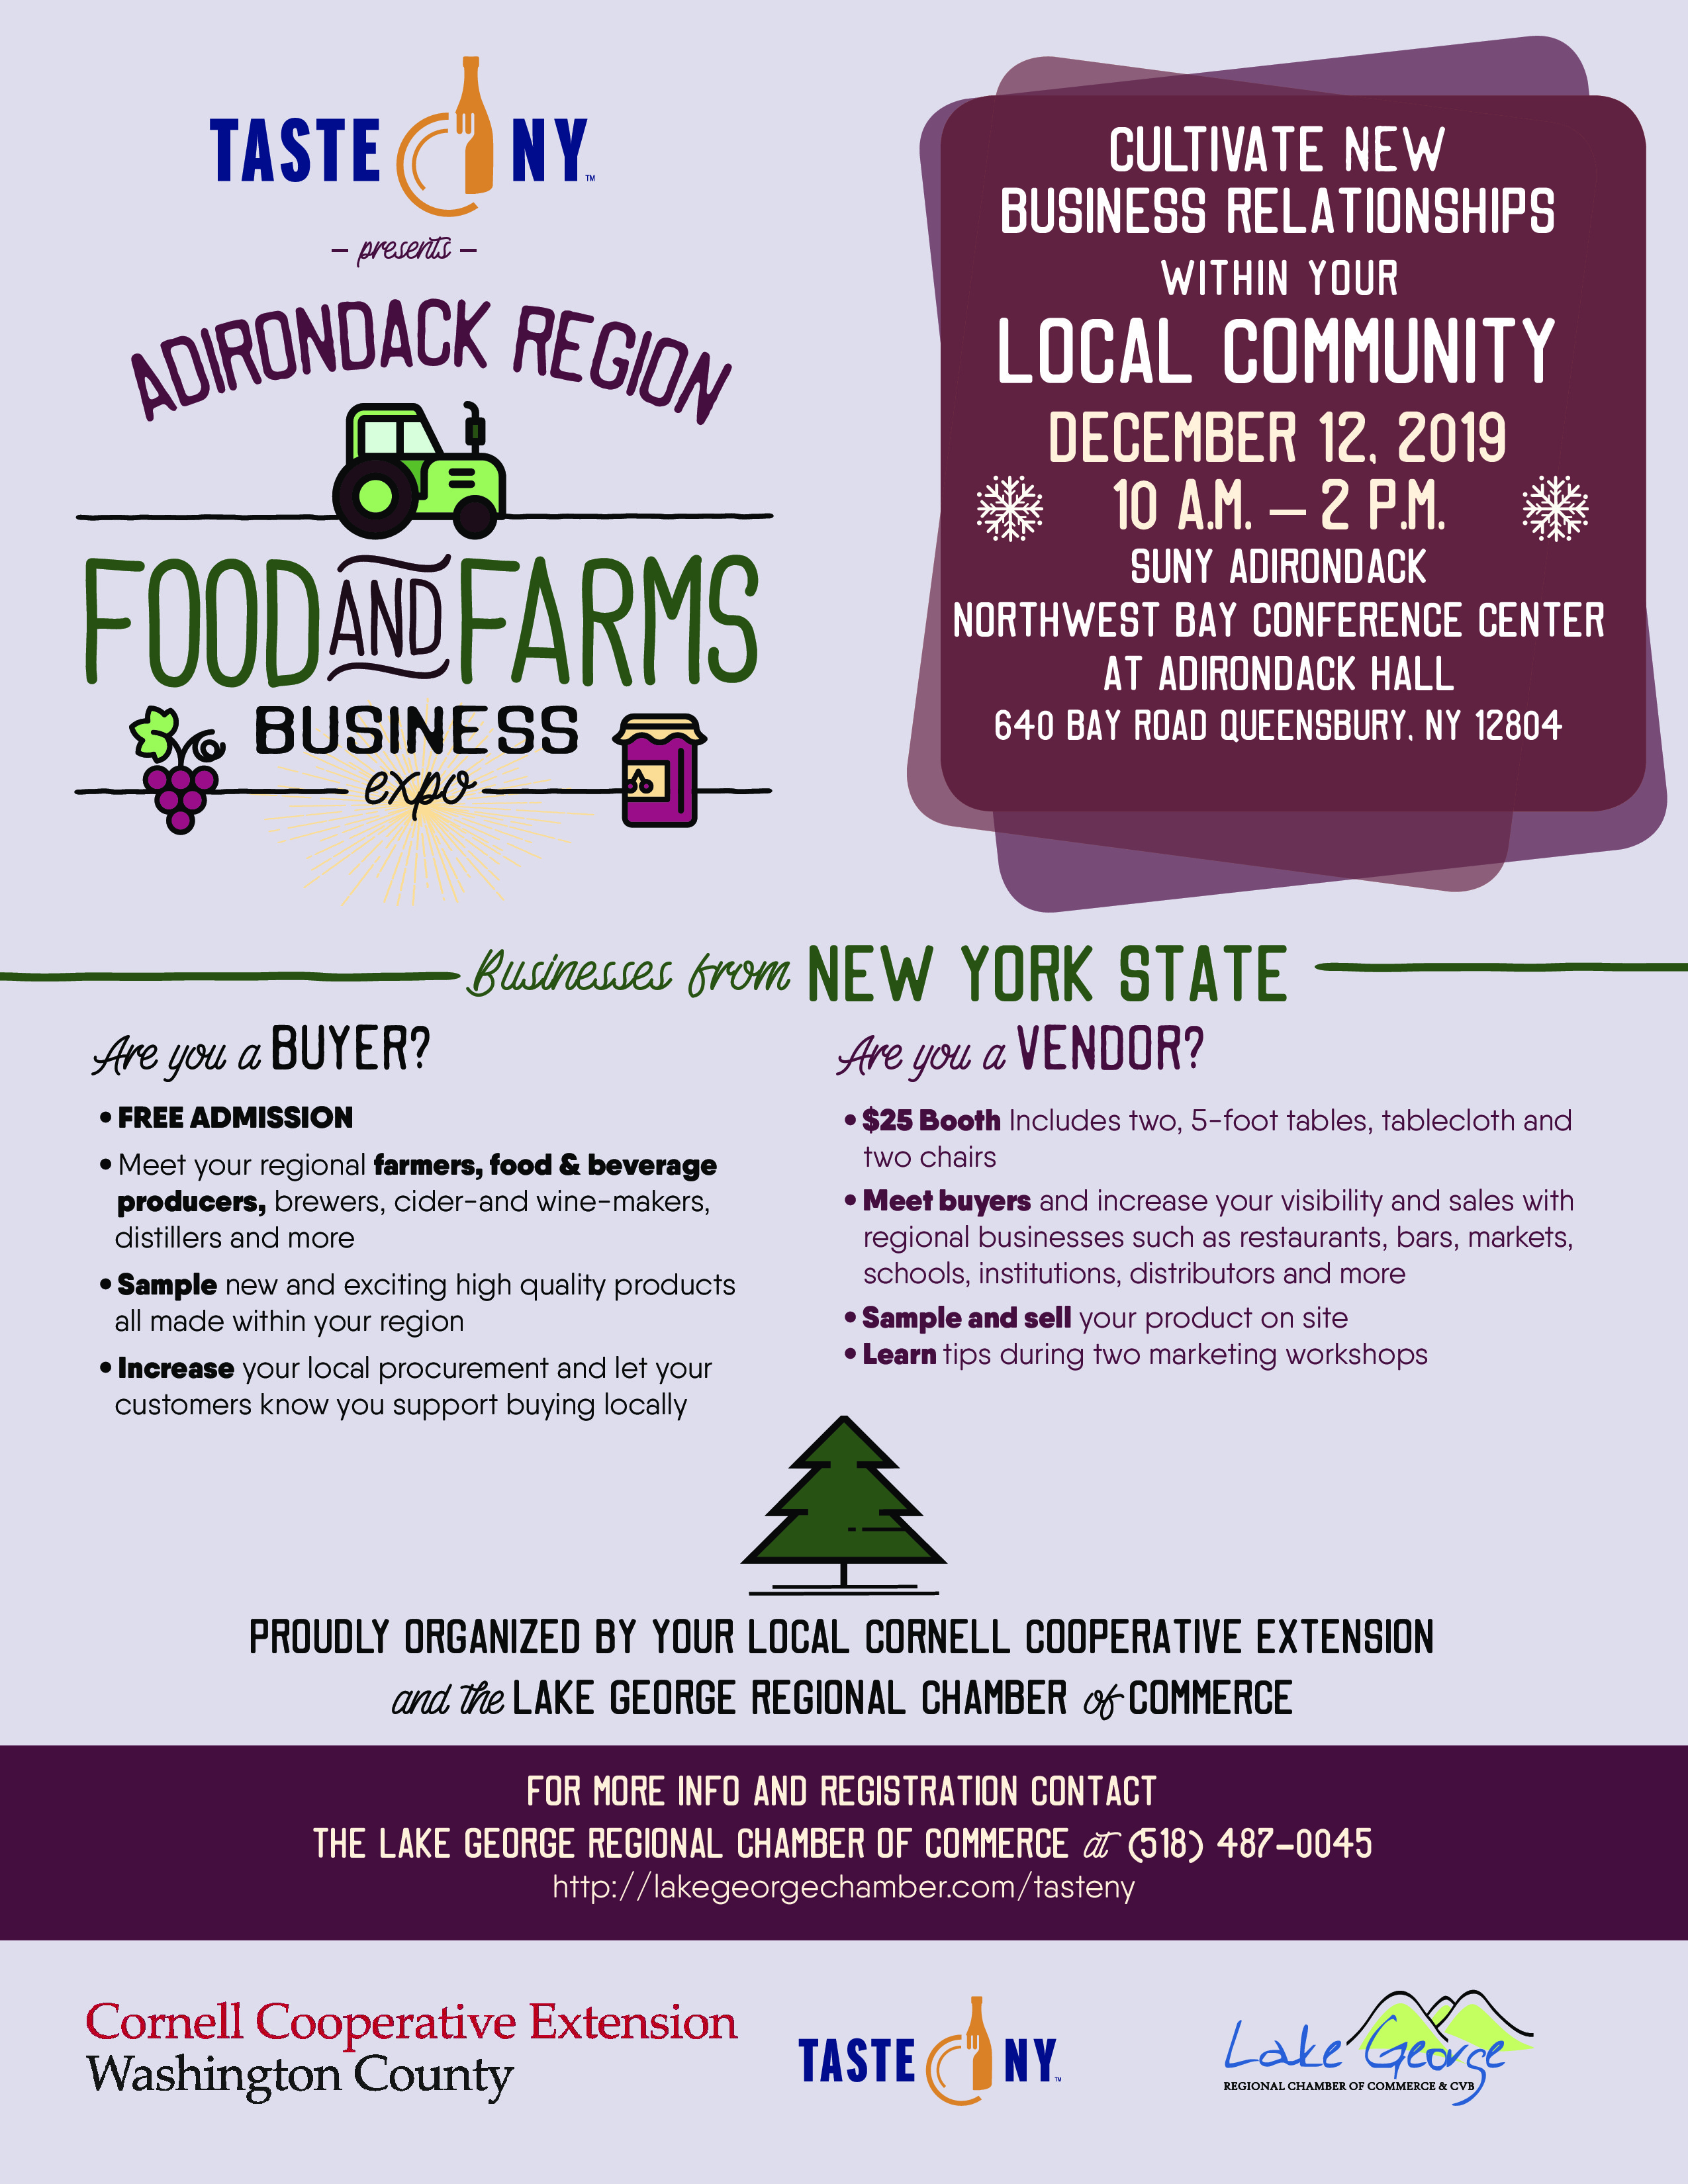 Register for the Adirondack Region Food & Farms Business Expo